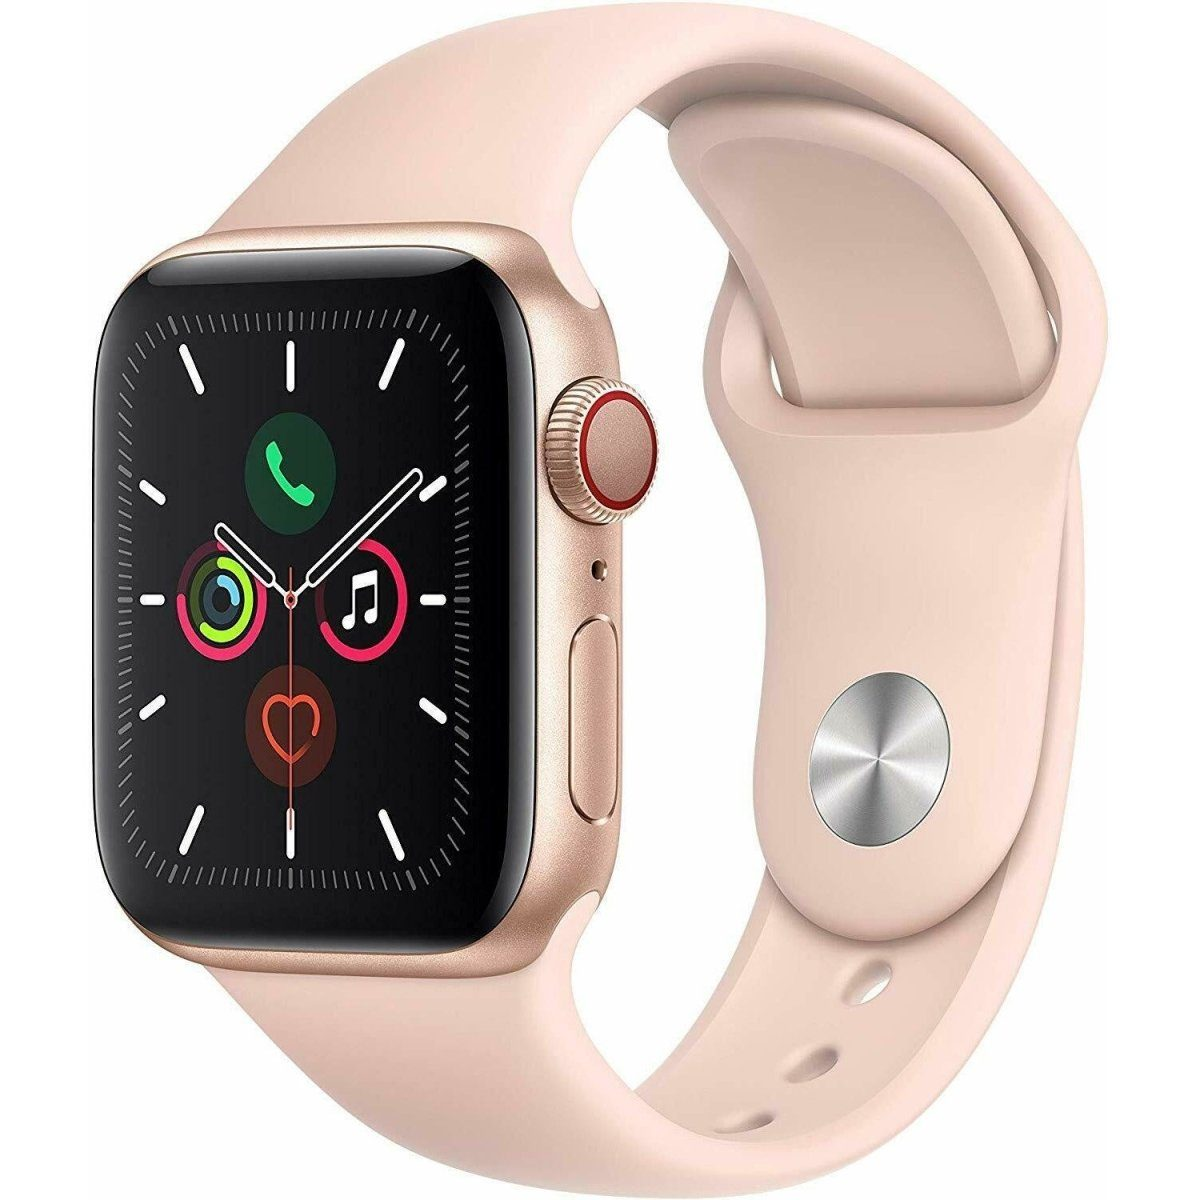 Apple Watch Gen 5 (40mm) - Fix Or Cell Now Device Shop